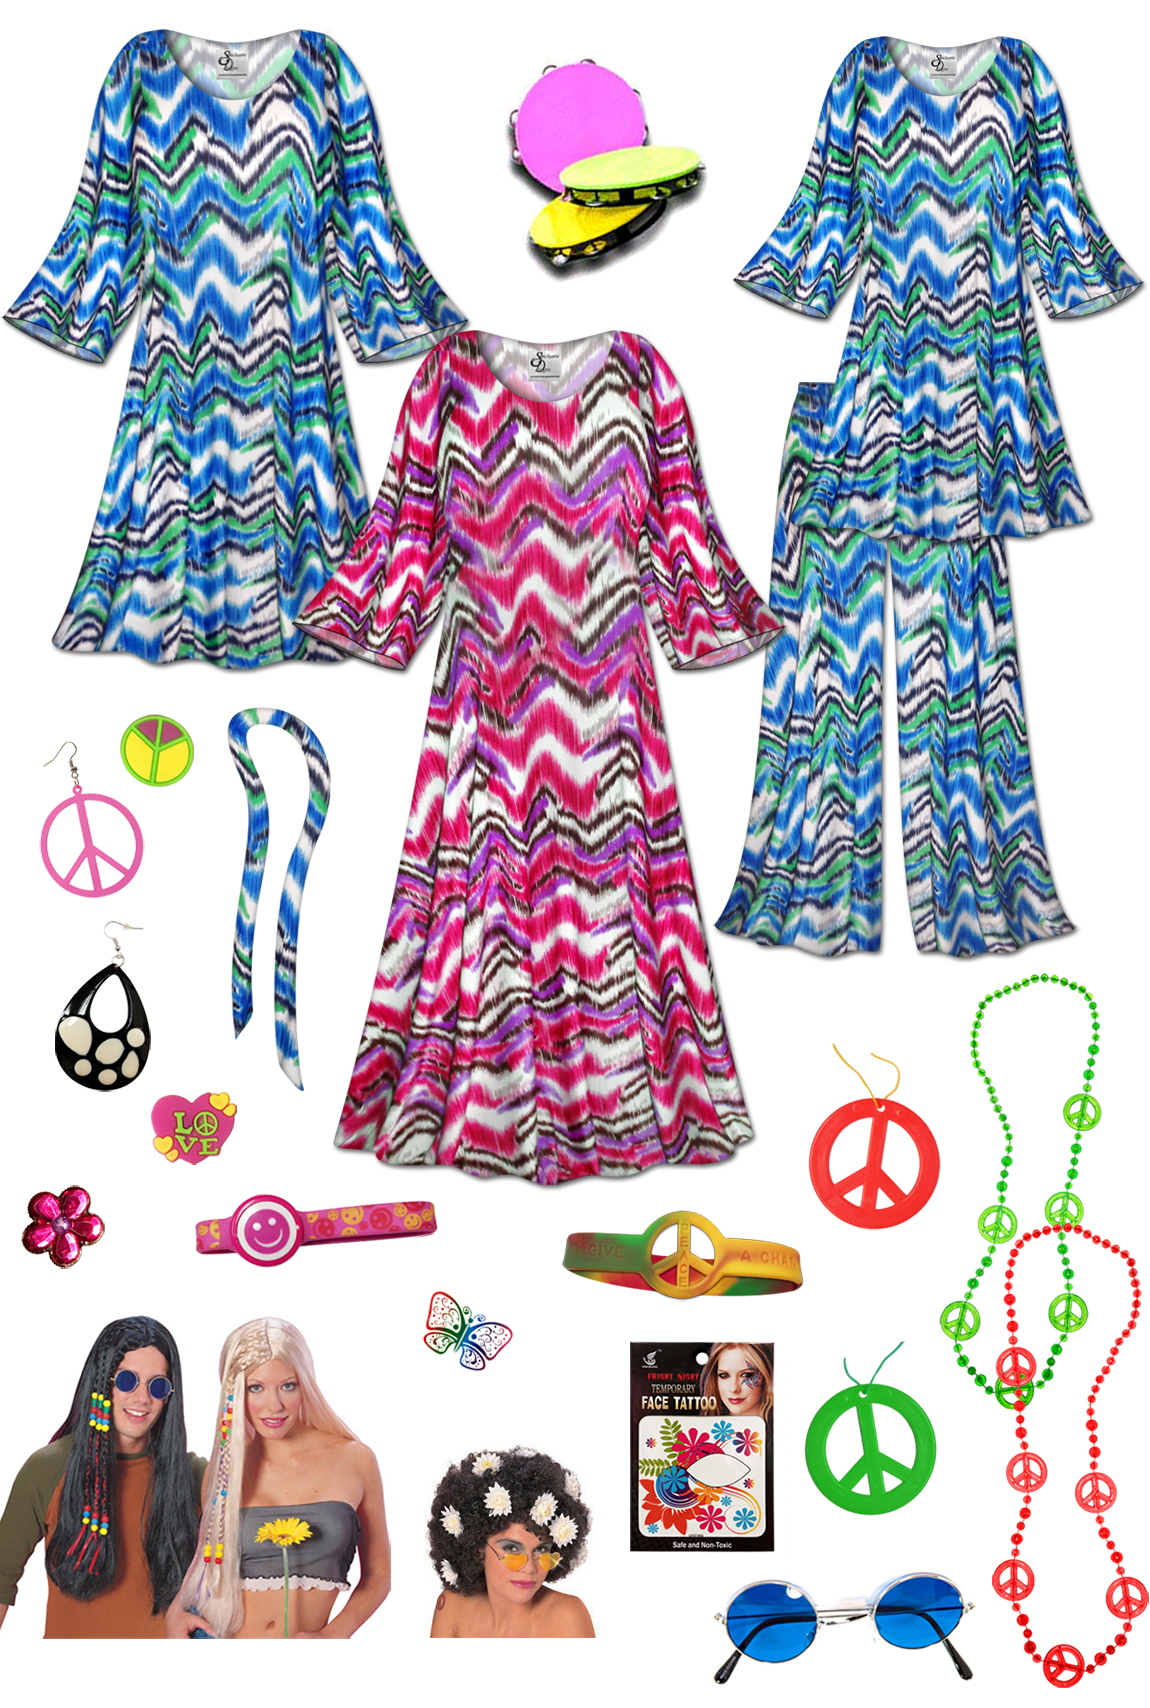 cf90ff5ba0b hippie plus size halloween costume and accessories groovy zigzag plus size  supersize 60s style retro dress